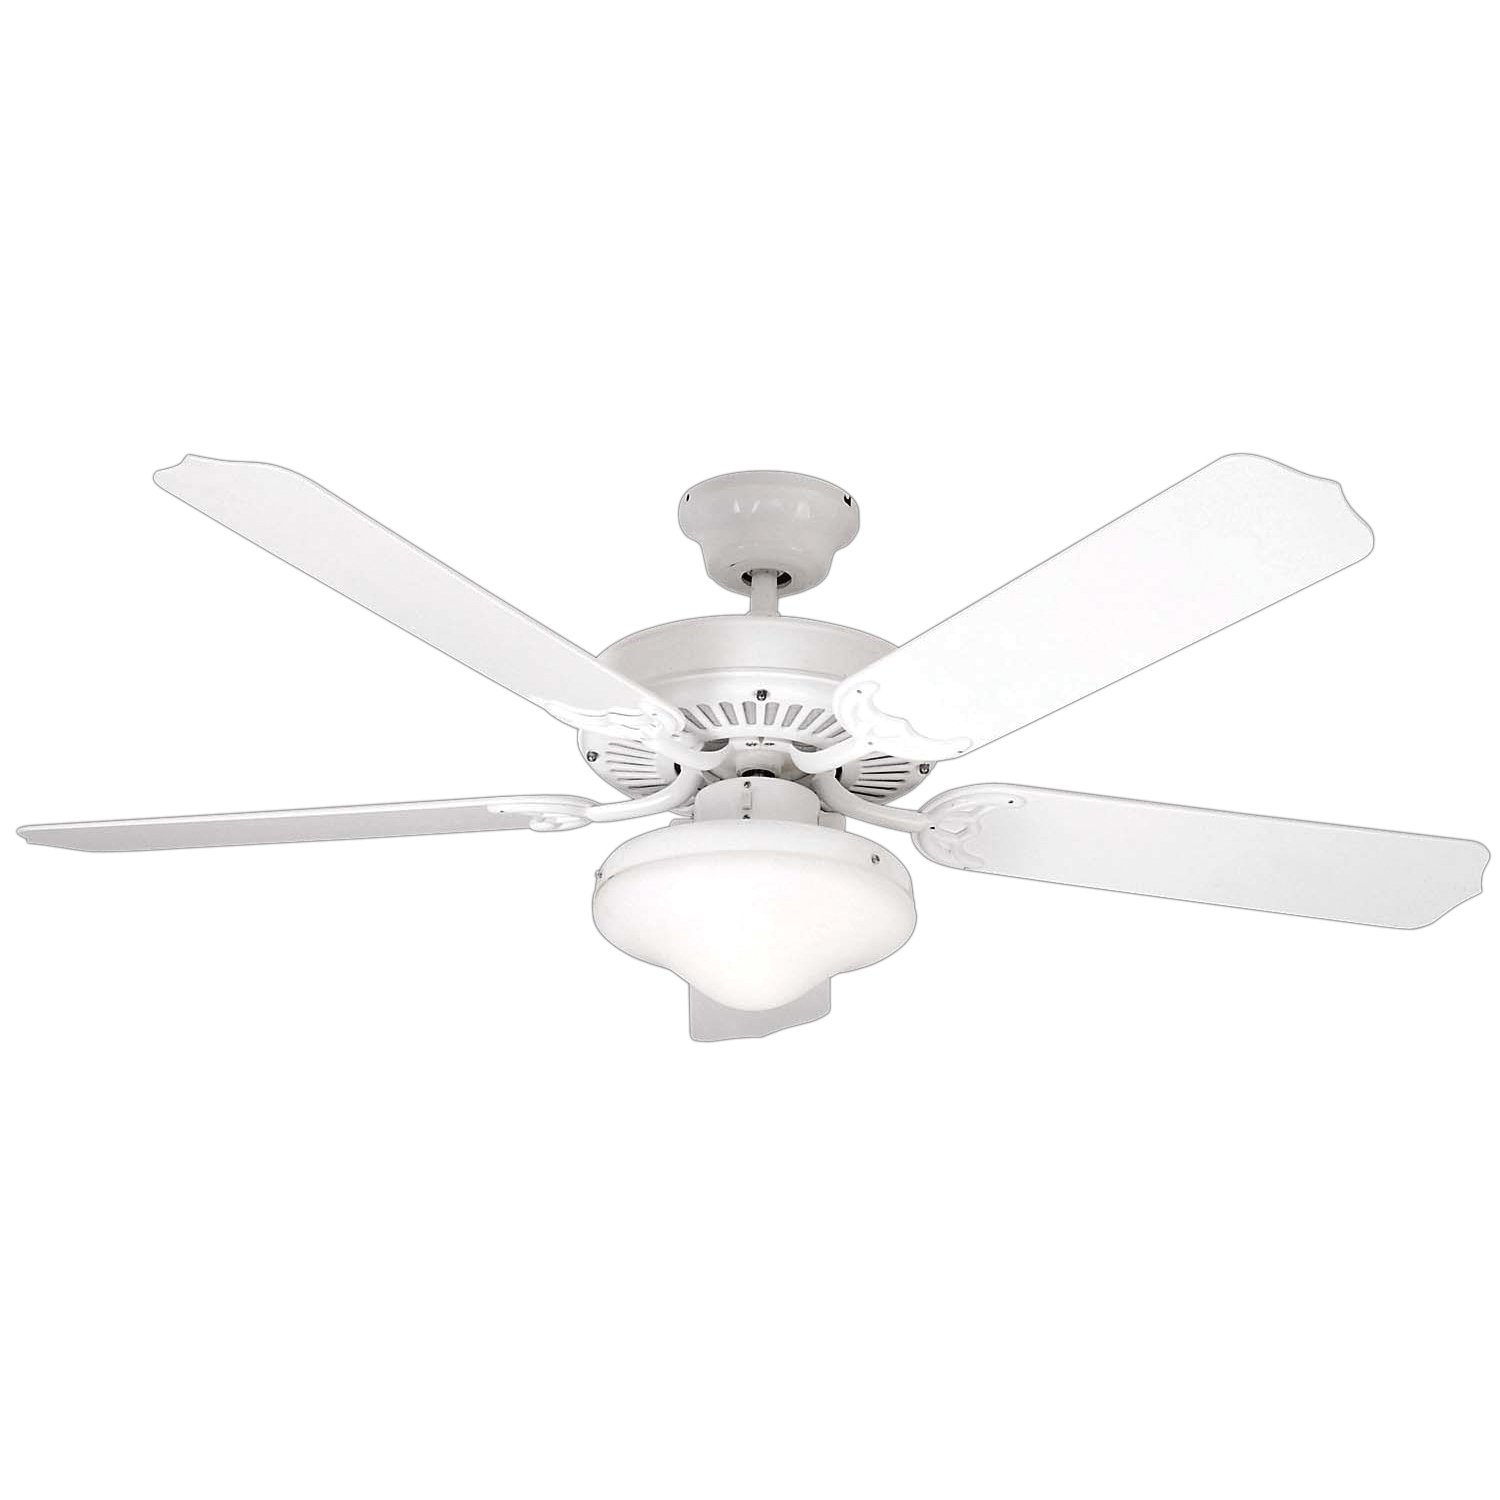 Litex e wod52ww5c all weather collection 52 inch indooroutdoor litex e wod52ww5c all weather collection 52 inch indooroutdoor ceiling fan with five white abs blades and single light kit with frost glass amazon aloadofball Image collections